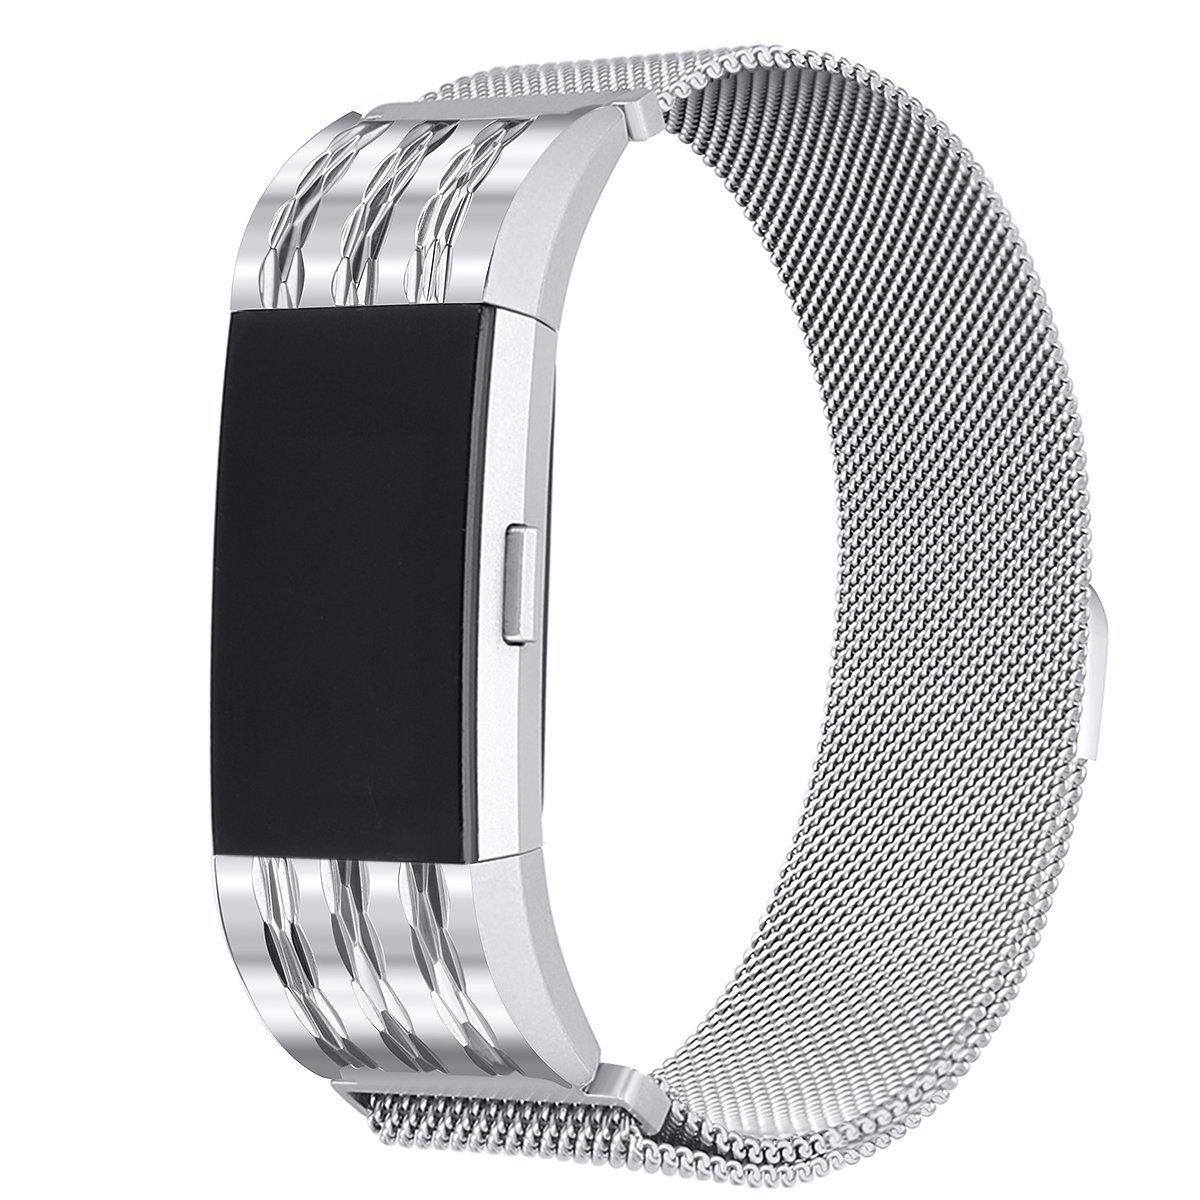 bayite For Fitbit Charge 2 Bands, Metal Stainless Steel Milanese Loop Metal Replacement Accessories Bracelet Strap with Unique Magnet Lock Large, Silver with Rhombus Pattern